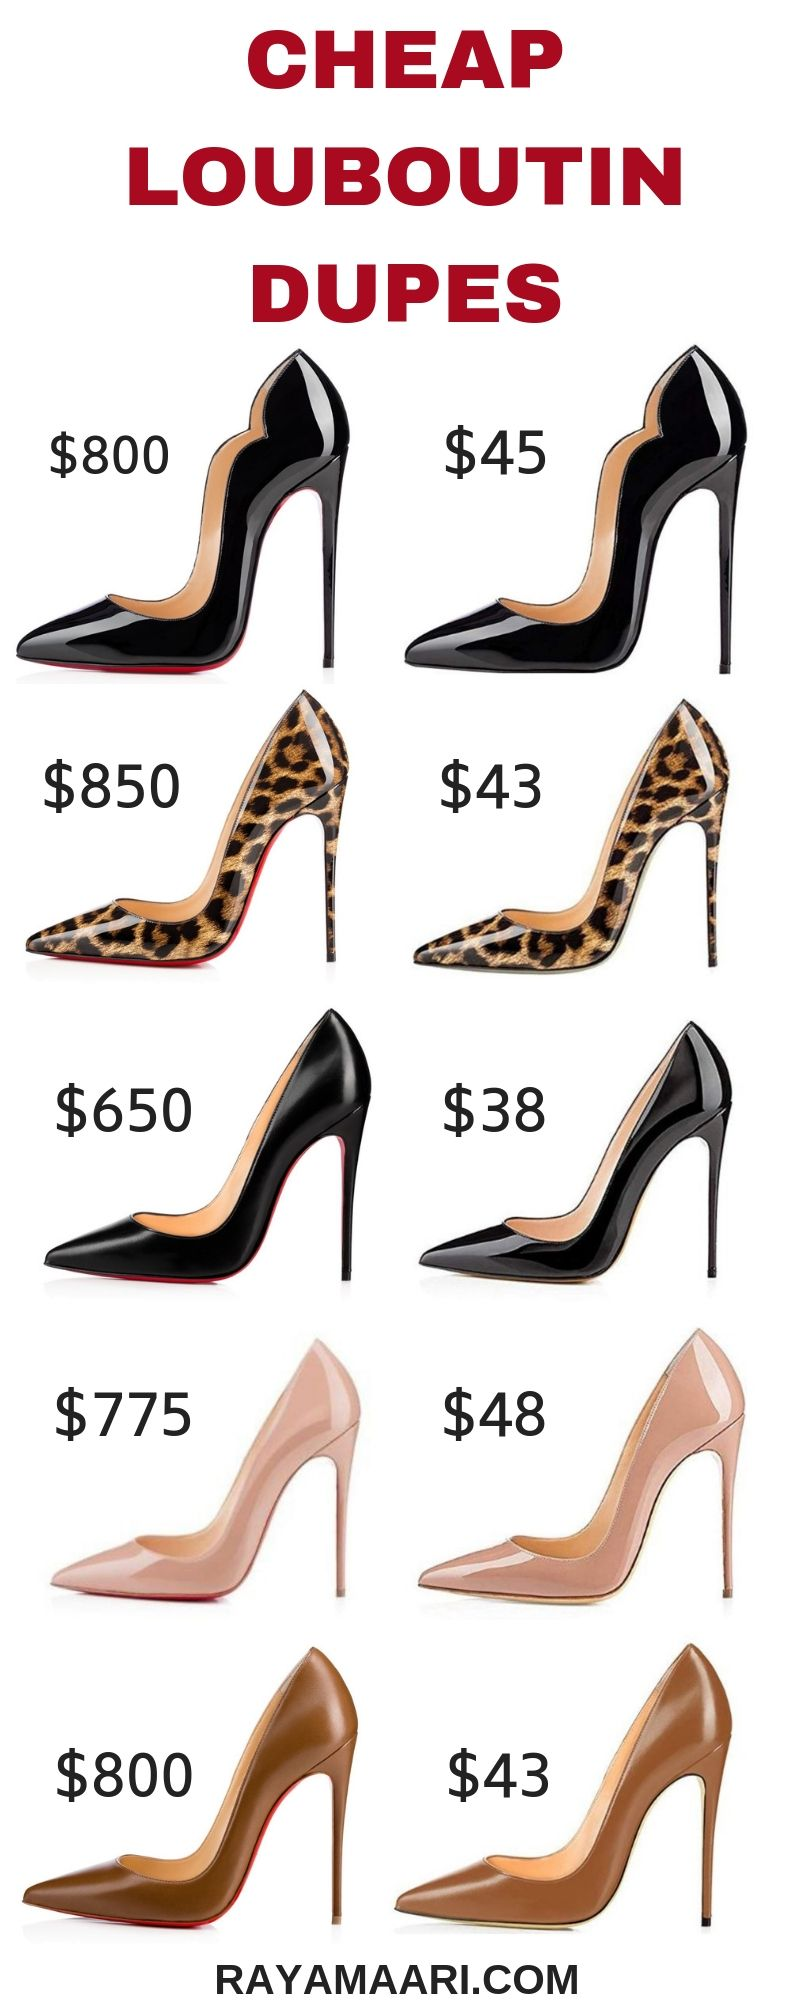 72362ea45 Shop these variety of louboutin dupes without breaking the bank or break  your feet. Finest stiletto heel, set to instantly make a look elegant.